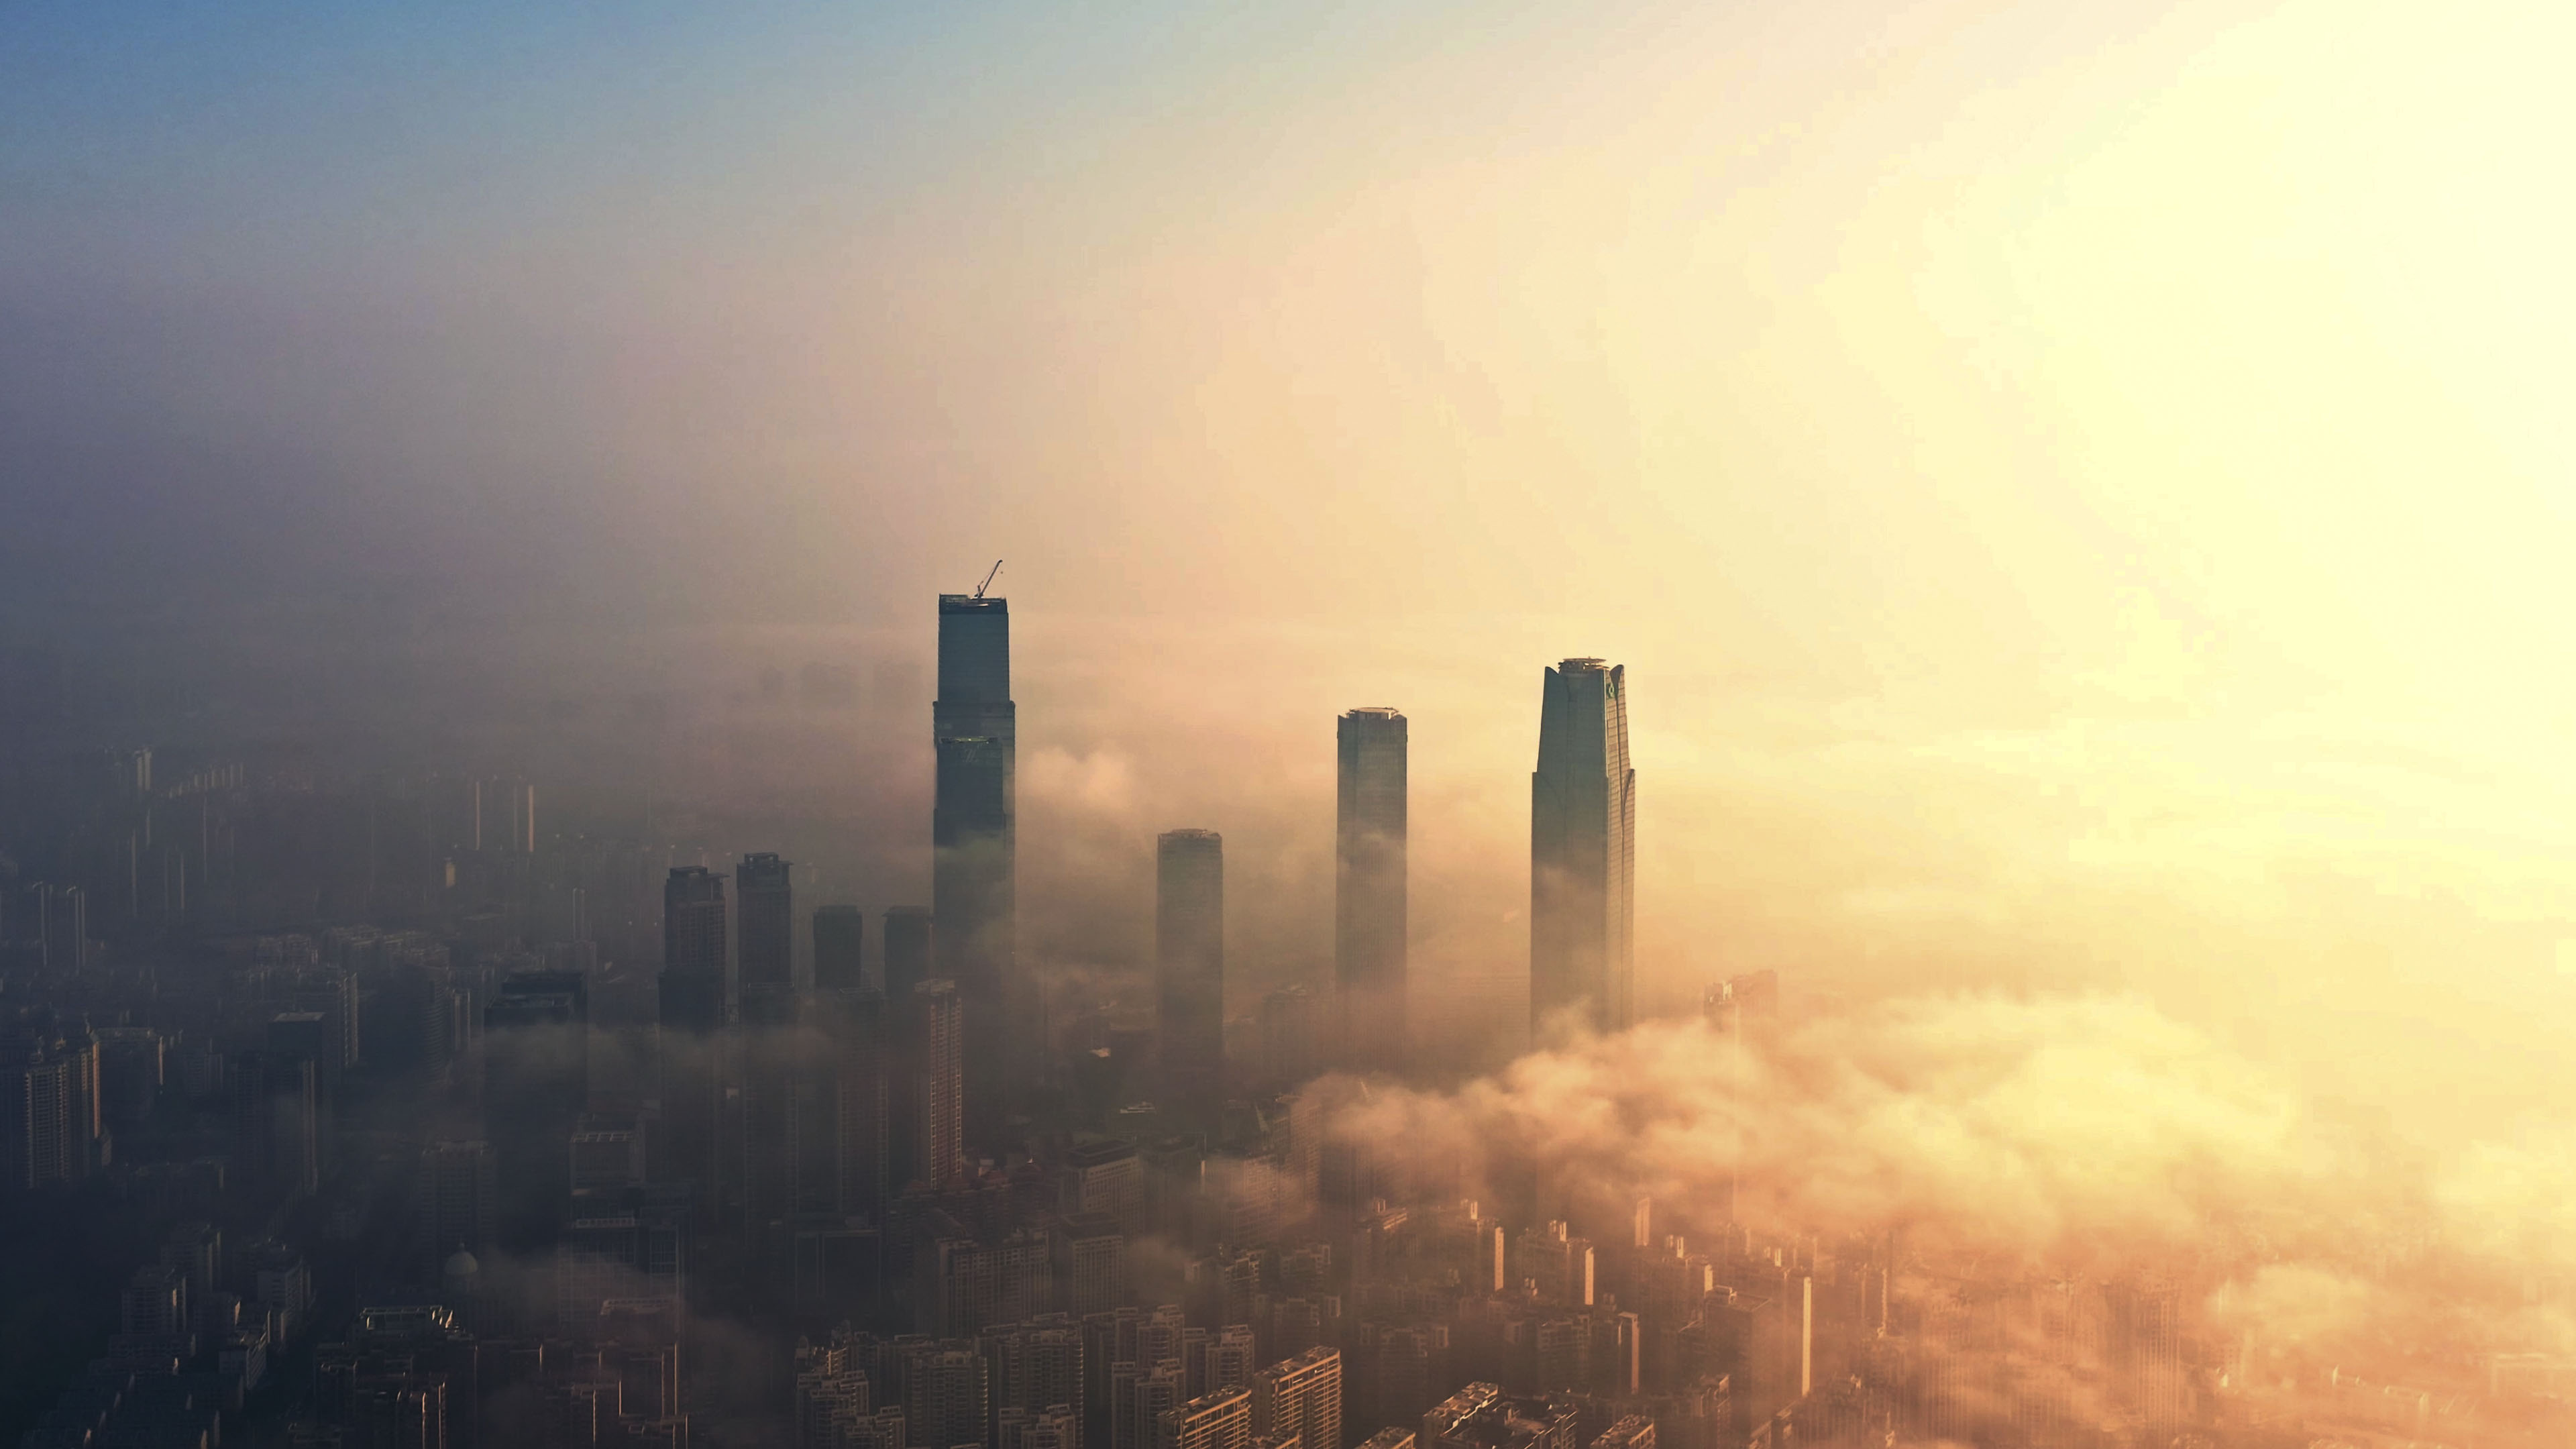 Buildings are a Major Source of Pollution